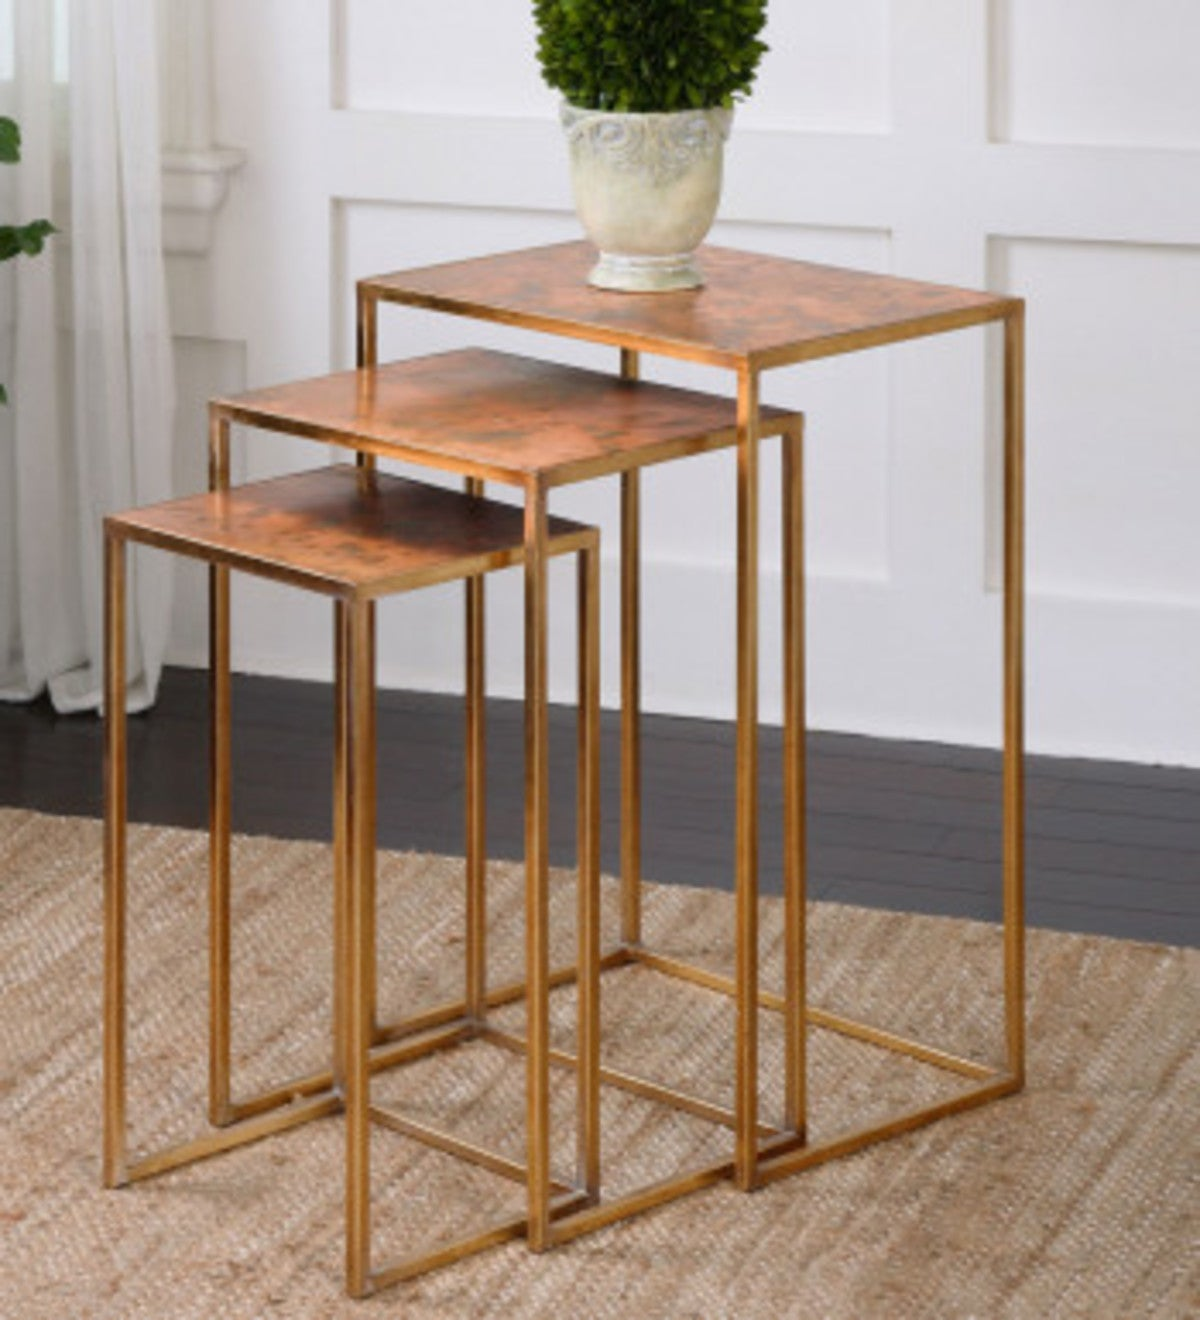 Gold Leafed Iron Nesting Tables, Set of 3